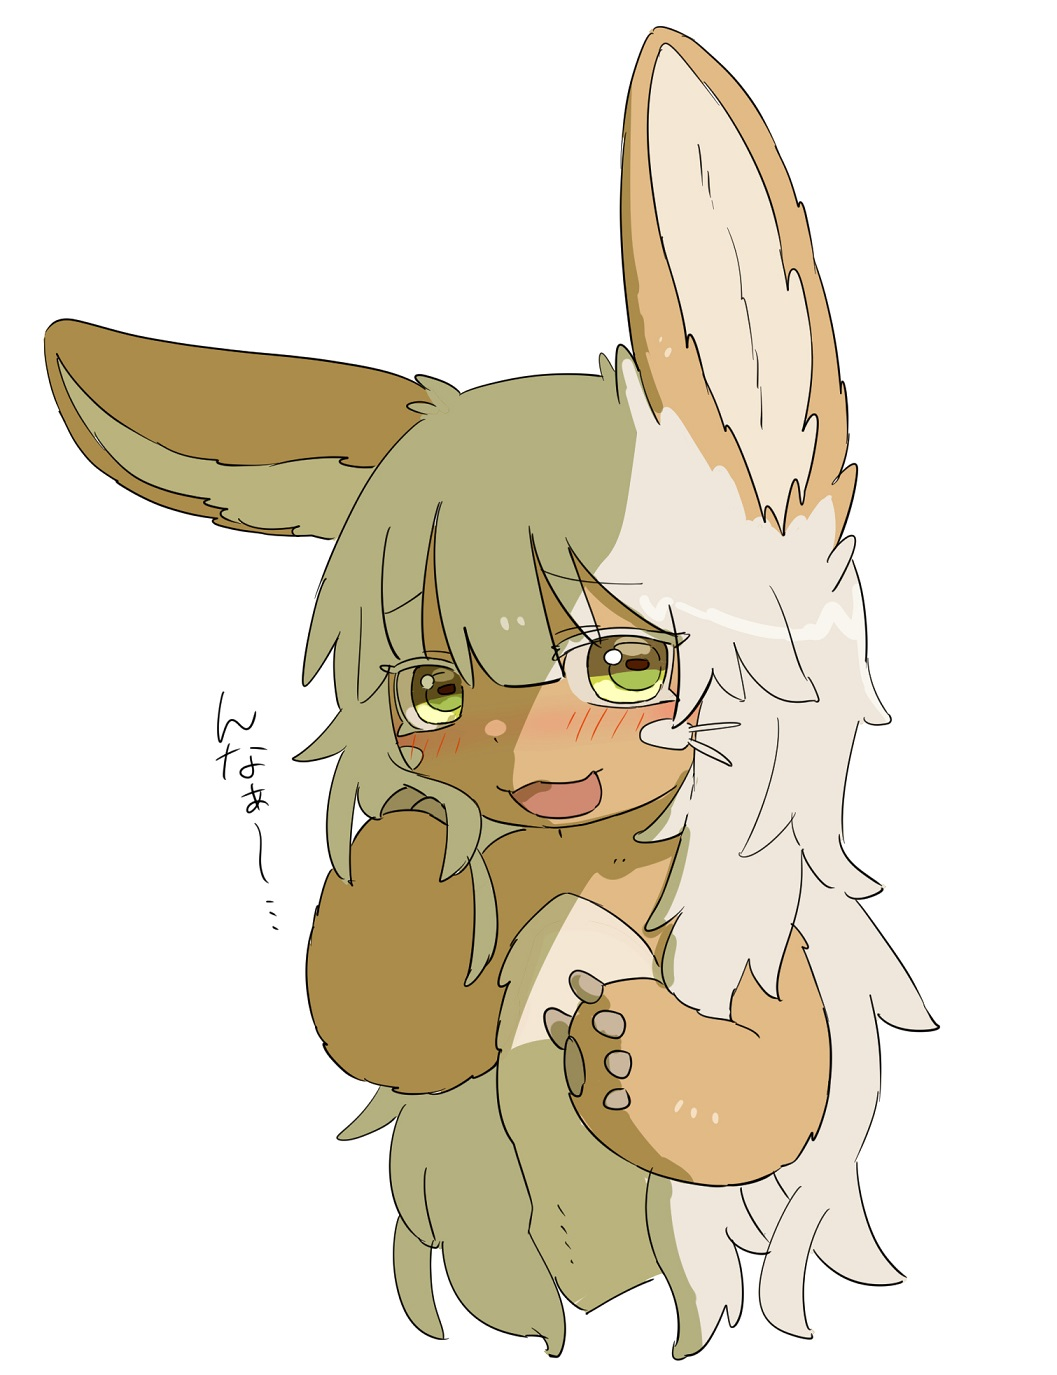 1other alternate_hair_length alternate_hairstyle androgynous animal_ears blush furry highres kawasemi27 long_hair looking_at_viewer made_in_abyss messy_hair nanachi_(made_in_abyss) open_mouth solo translation_request upper_body very_long_hair whiskers white_hair yellow_eyes